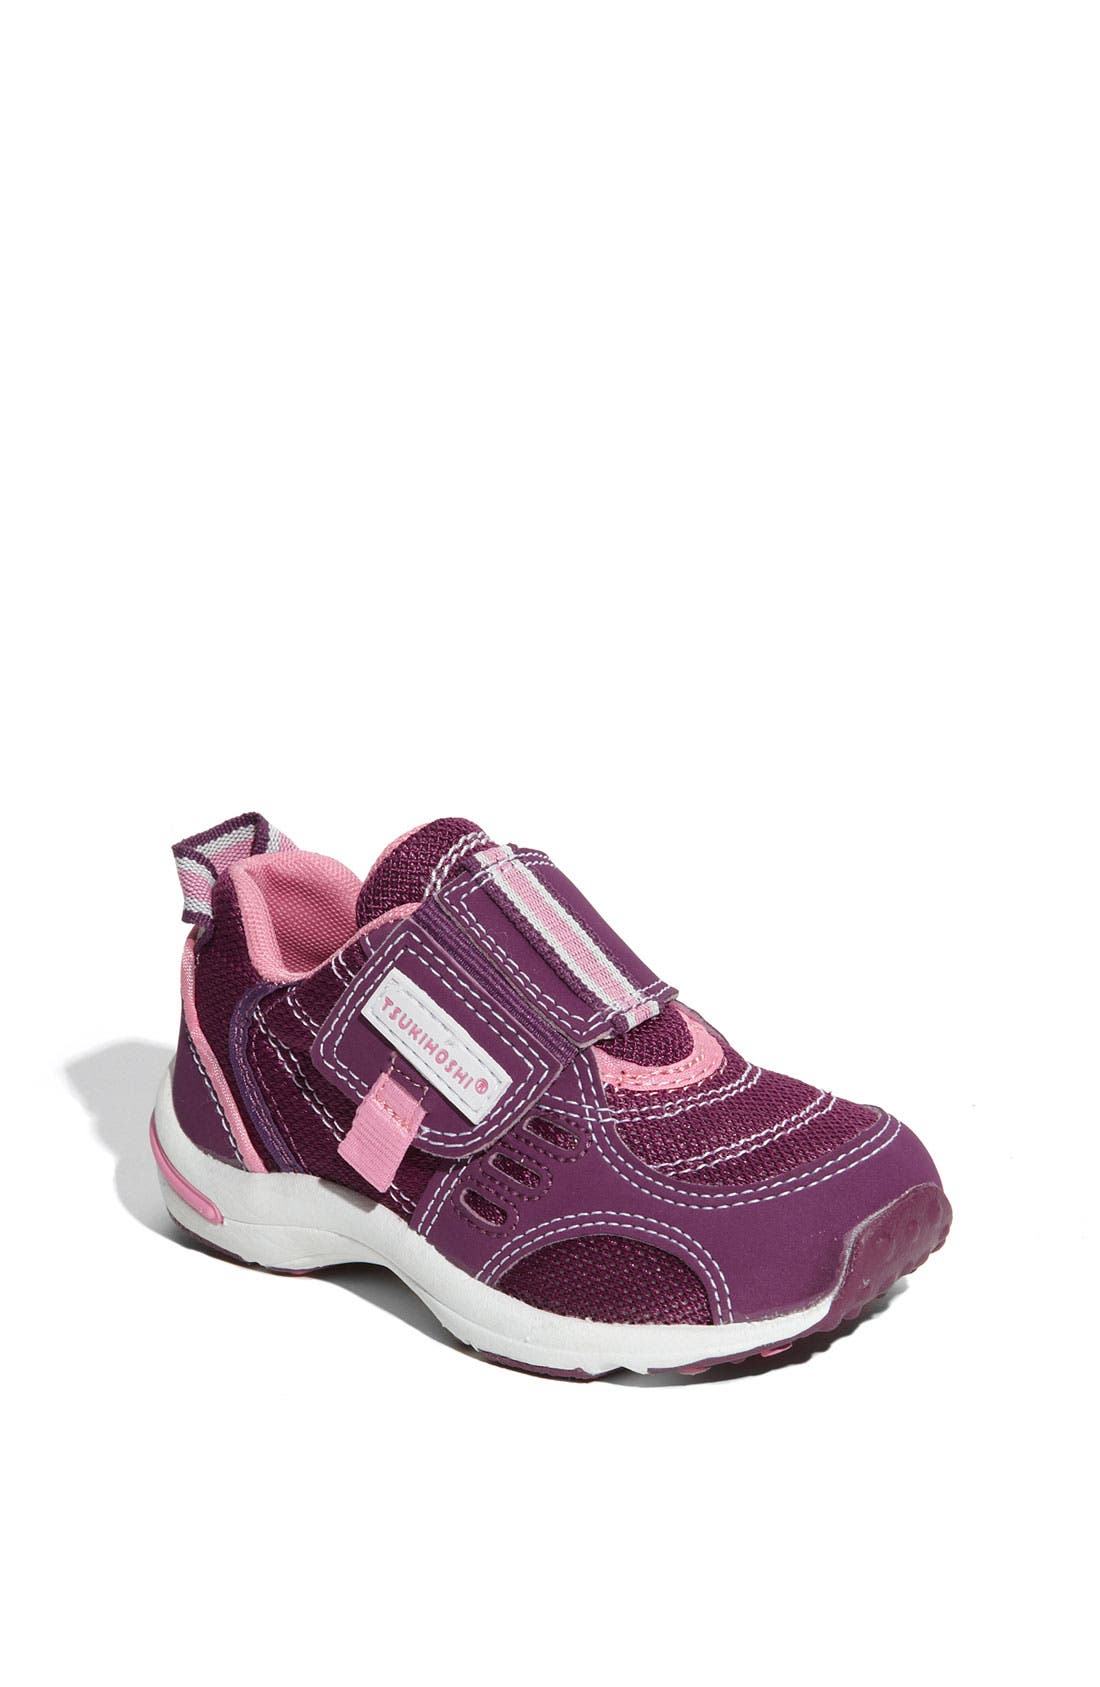 Main Image - Tsukihoshi 'Child 1' Sneaker (Toddler & Little Kid)